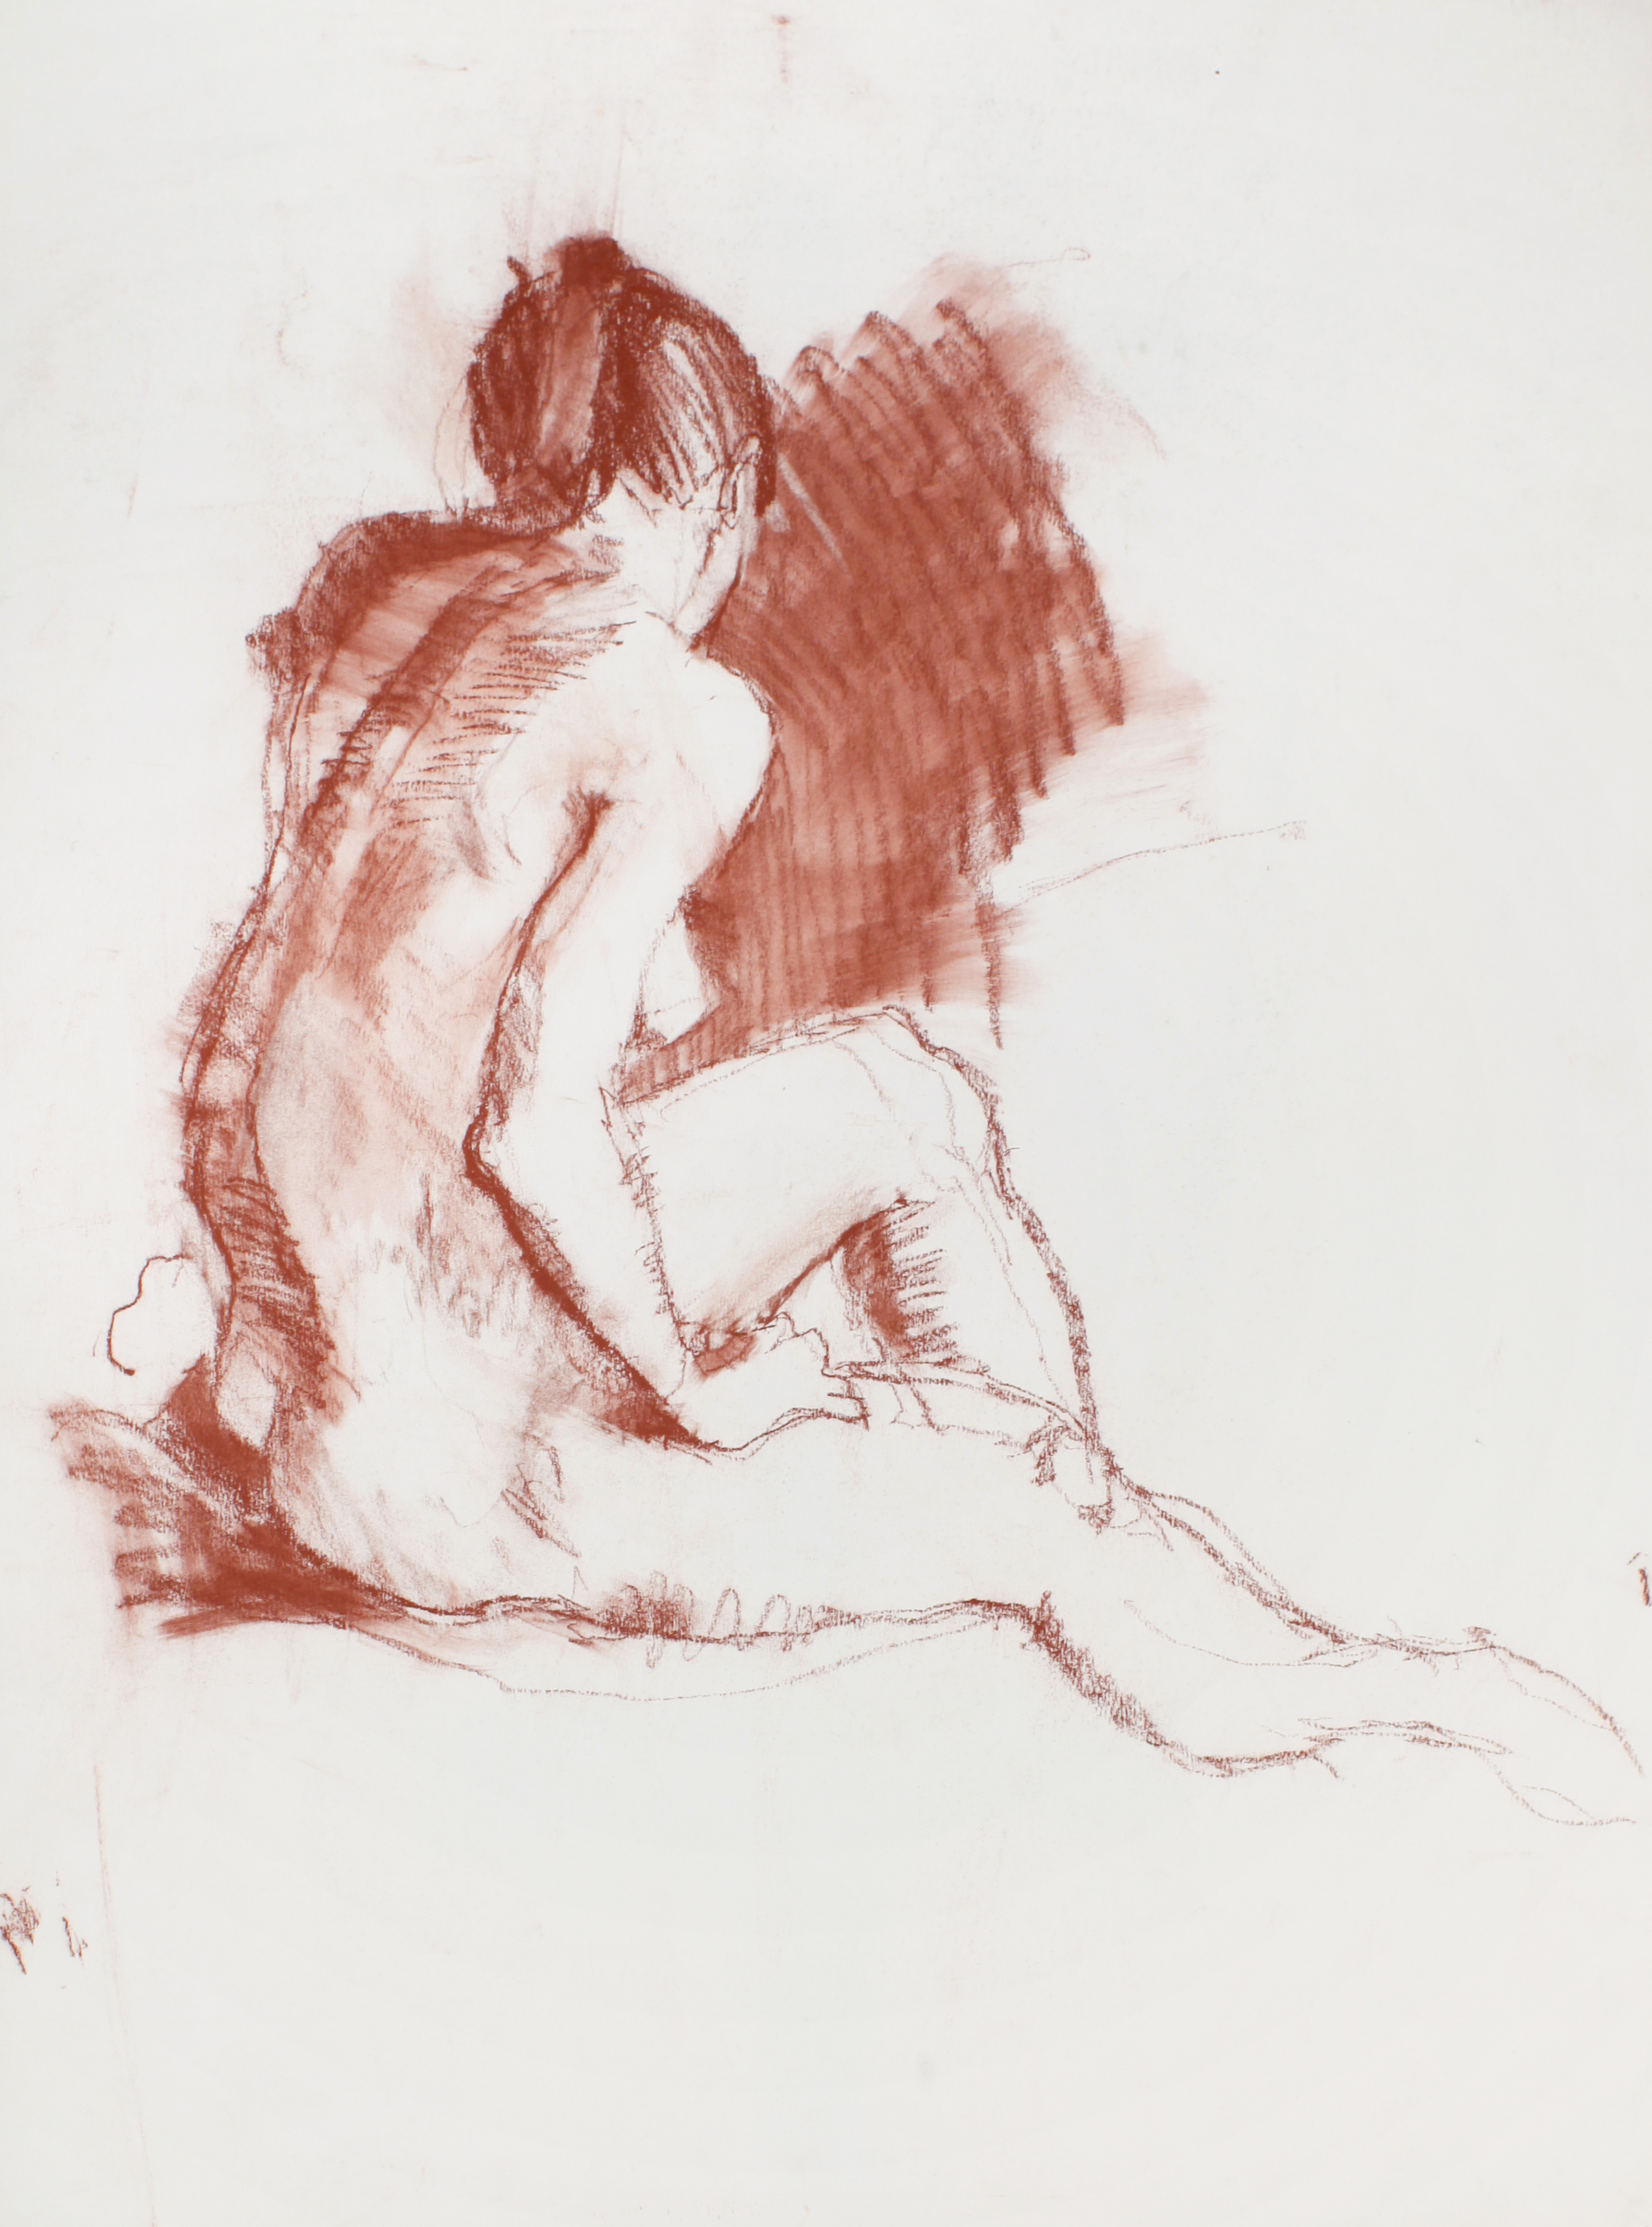 1980s_Seated_Nude_Turned_the_Wall_red_conte_on_paper_30x22in_WPF456.jpg